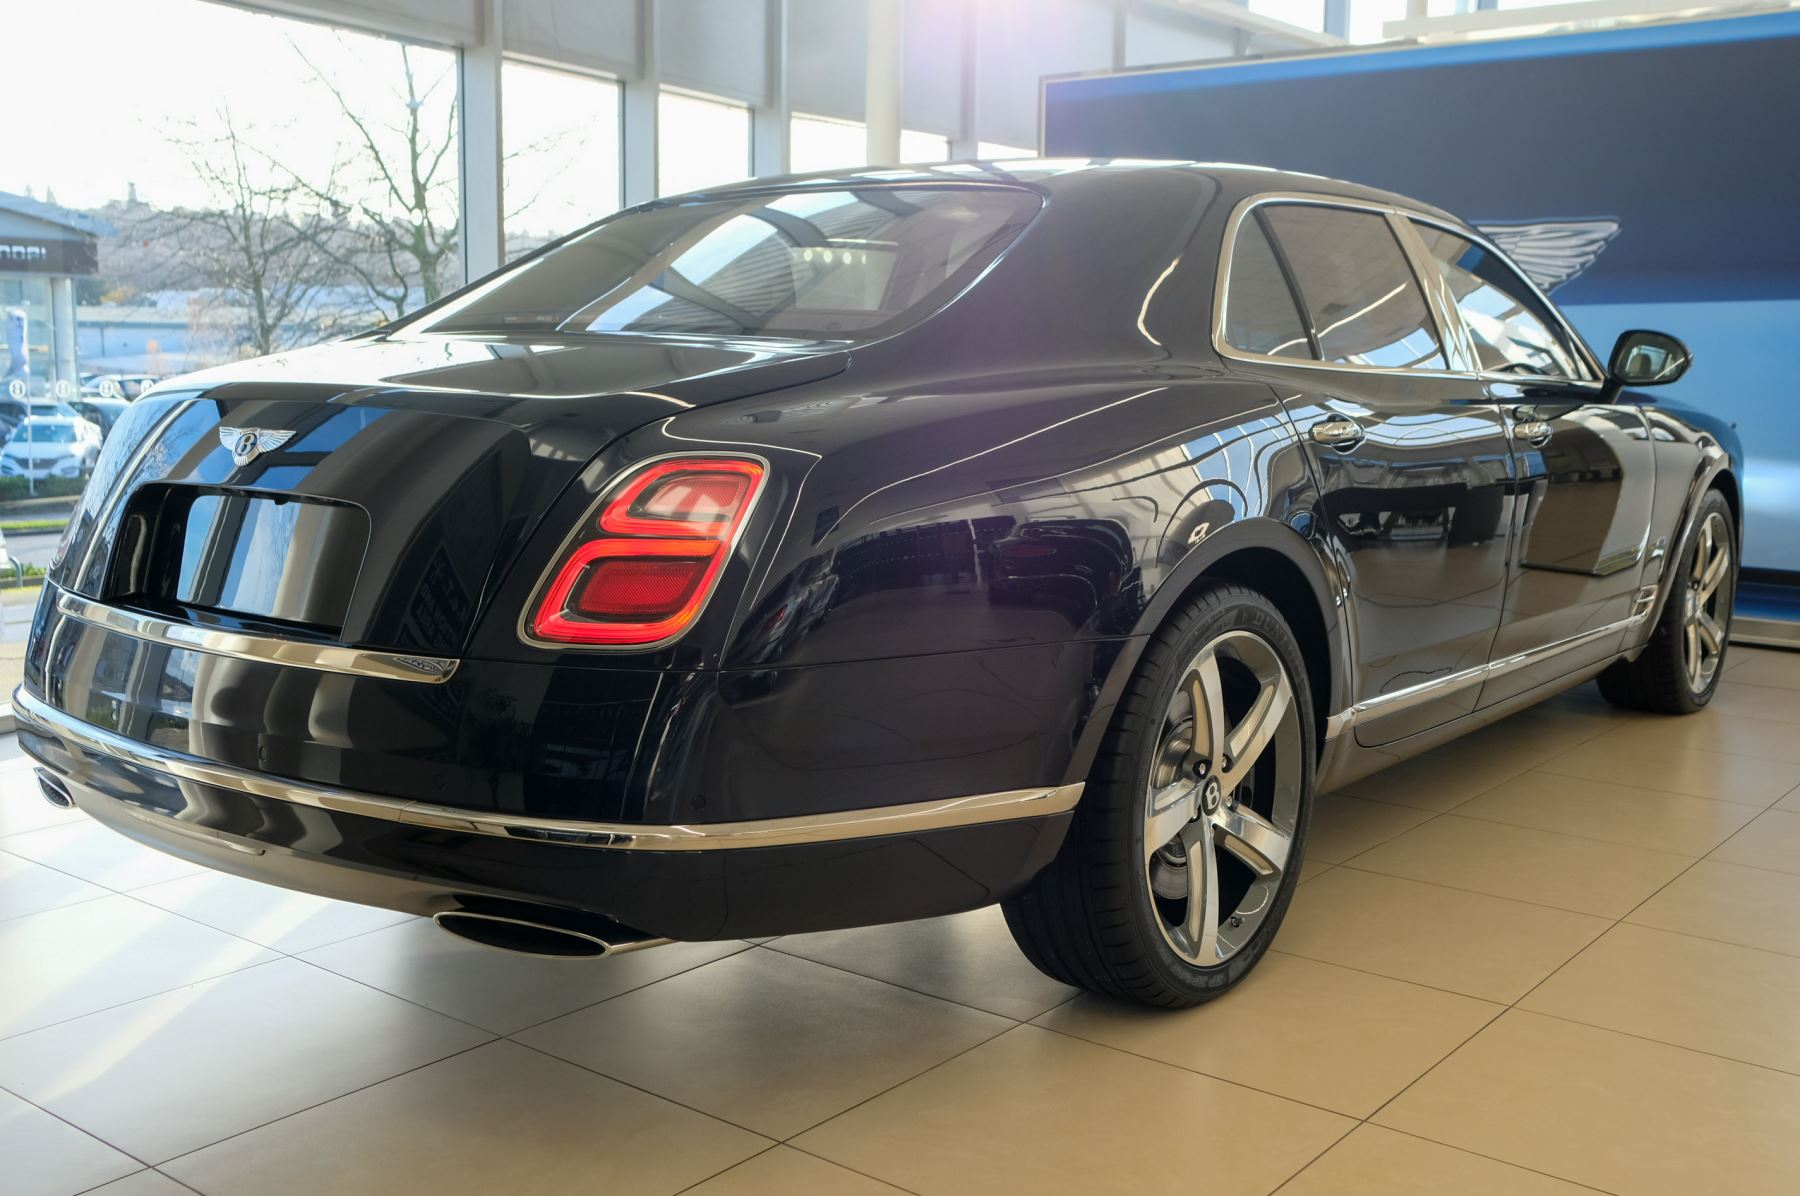 Bentley Mulsanne Speed 6.8 V8 Speed - Speed Premier, Entertainment and Comfort Specification image 2